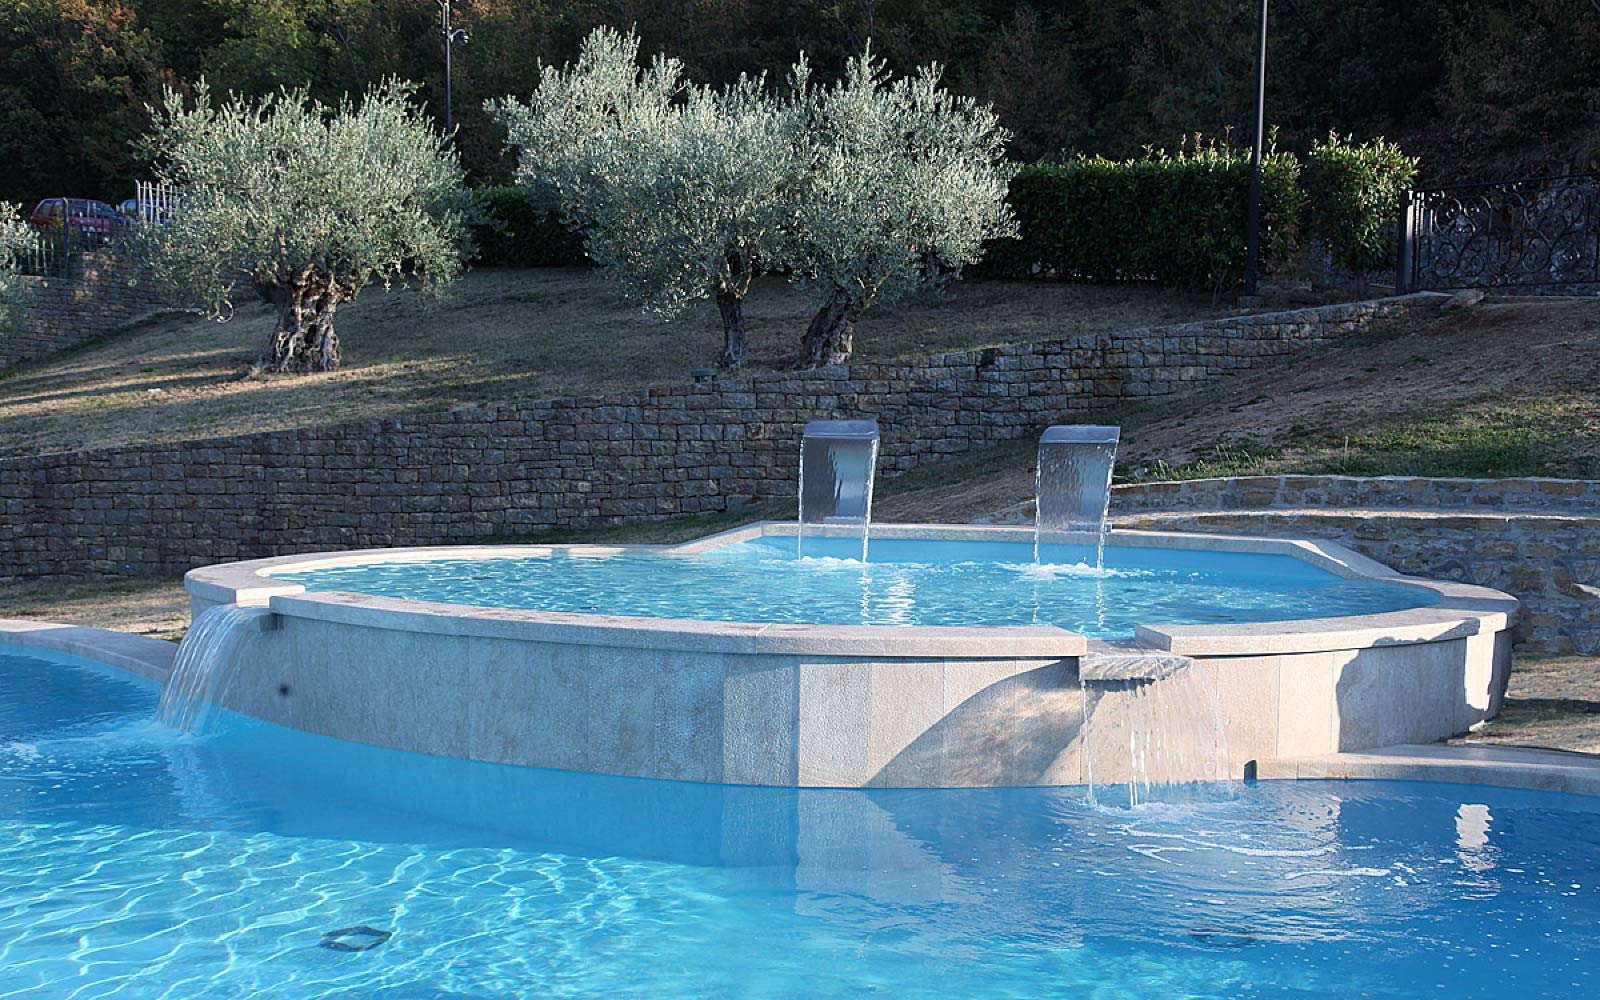 OUTSIDE POOL <br> CASINÒ HOTEL MULINO - CROAZIA